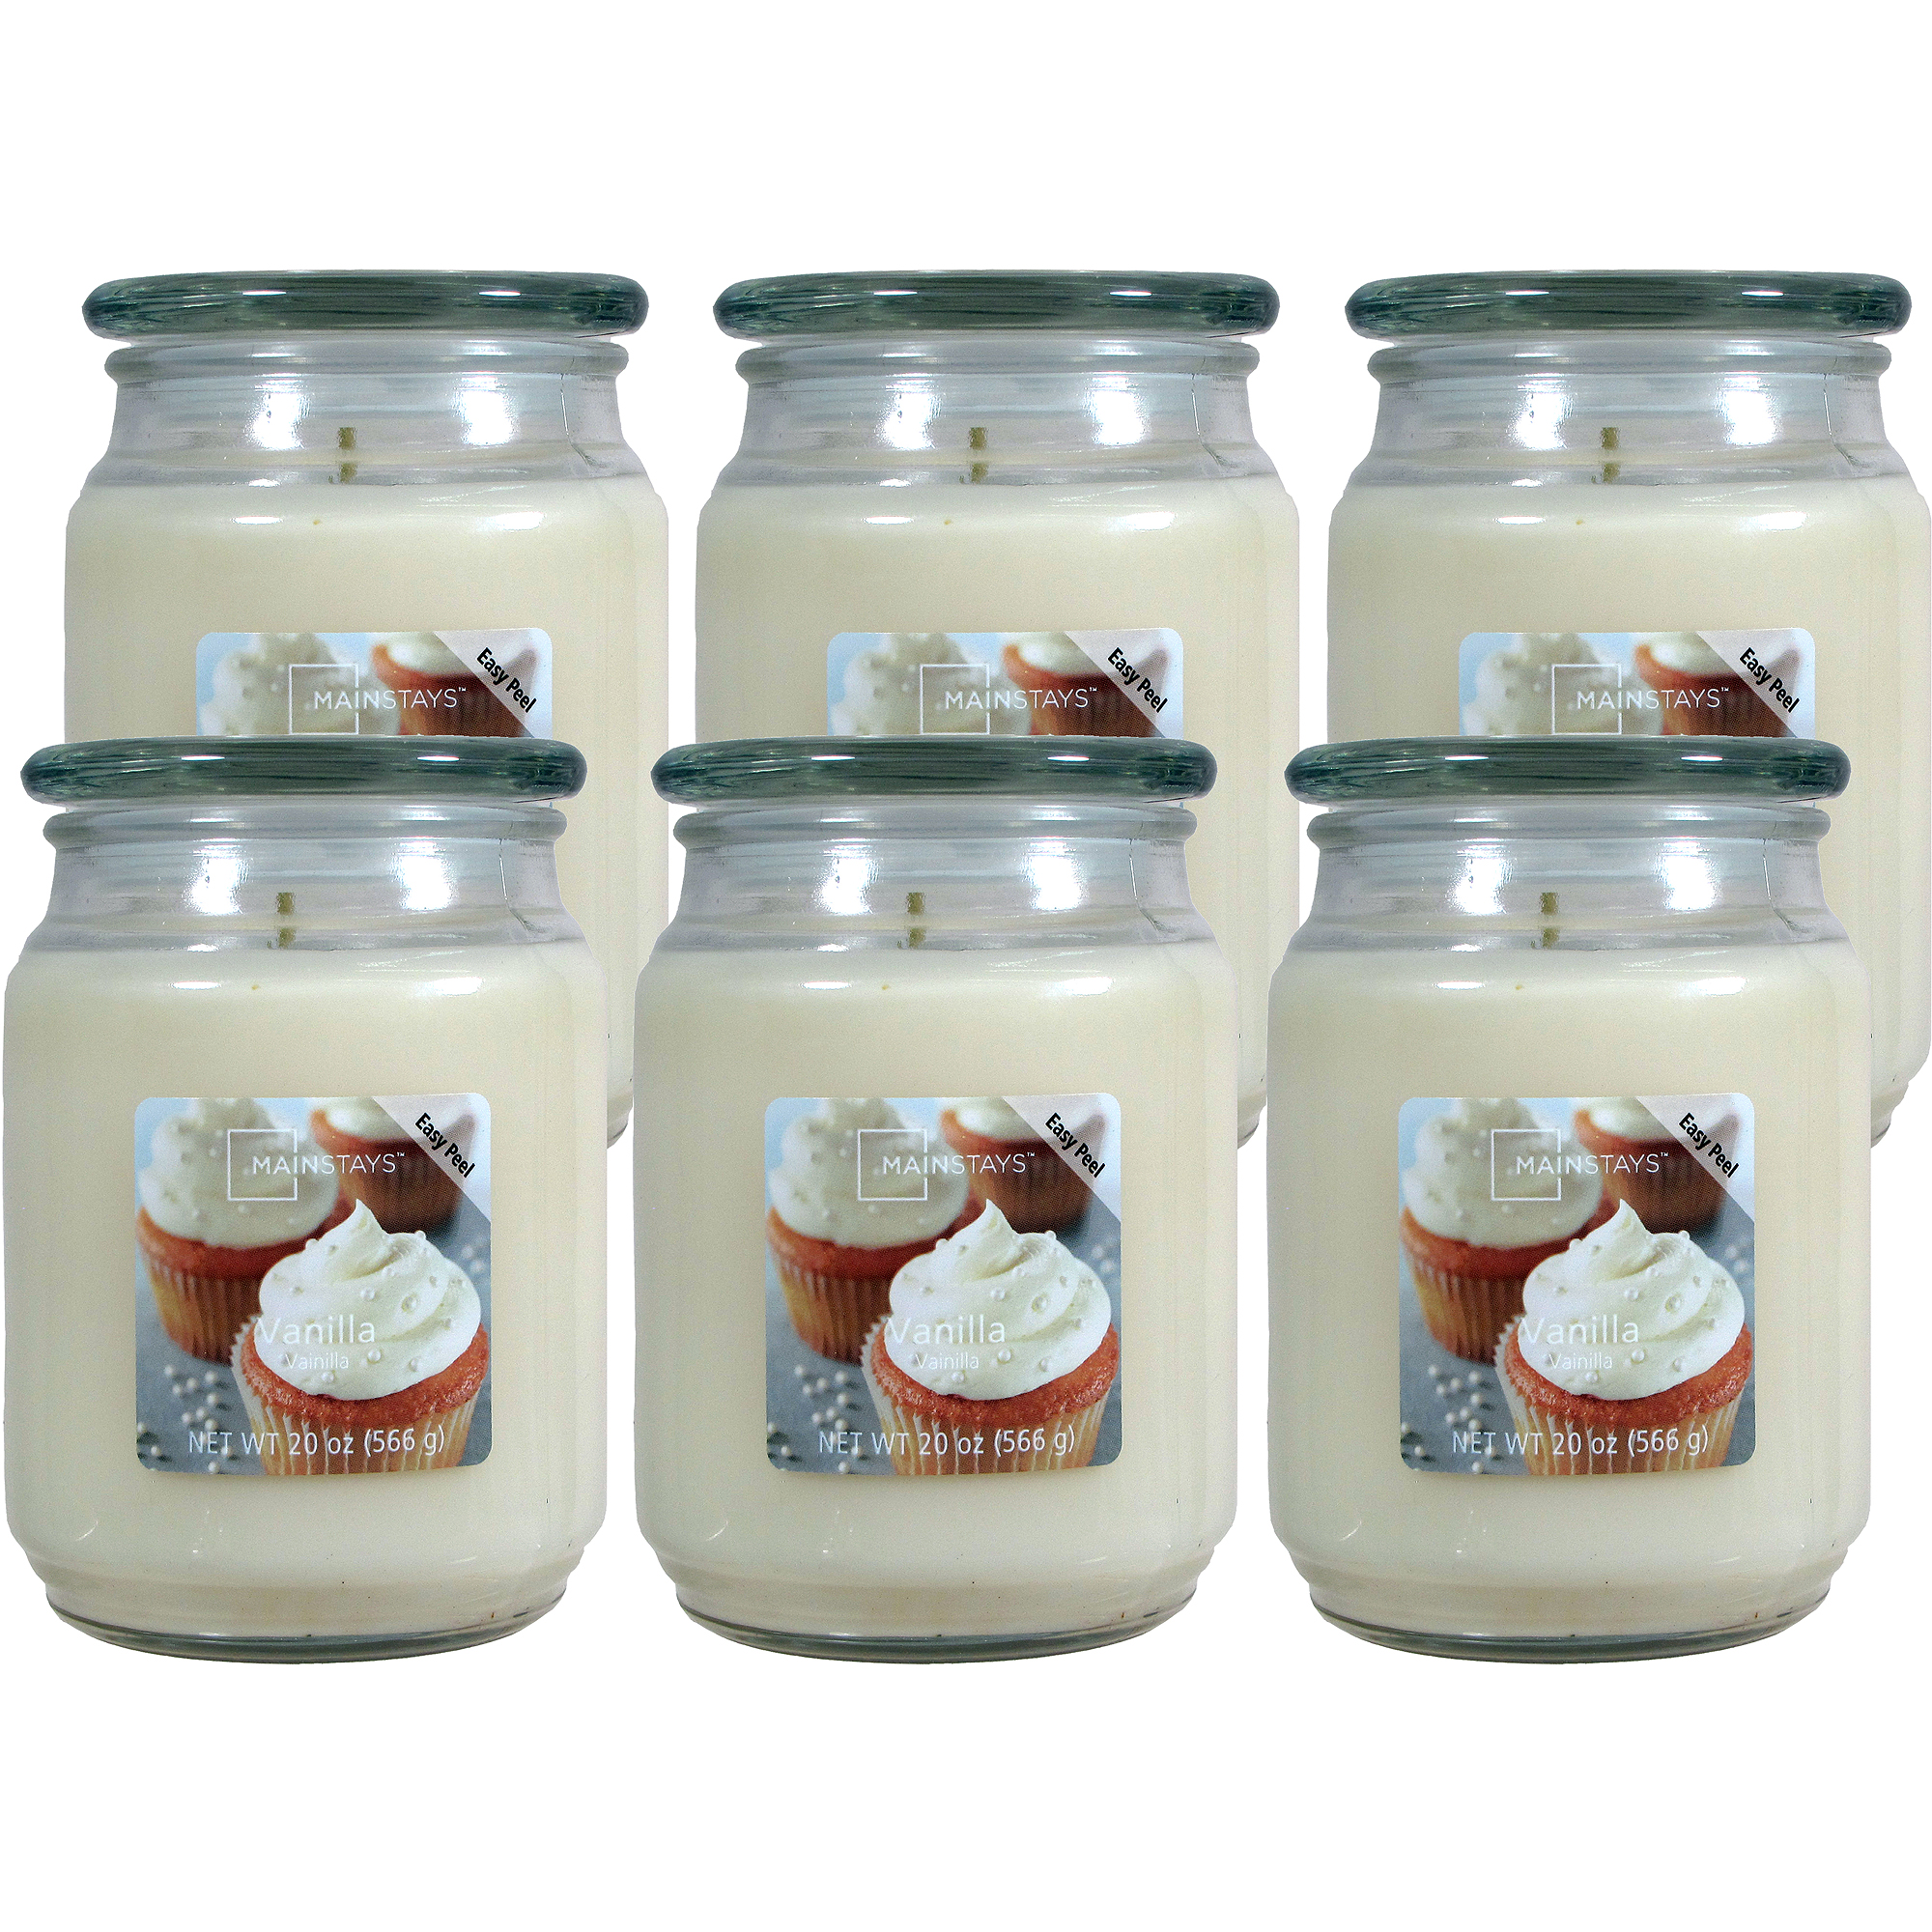 Mainstays 20-oz. Jar Candle, Vanilla, Set of 6